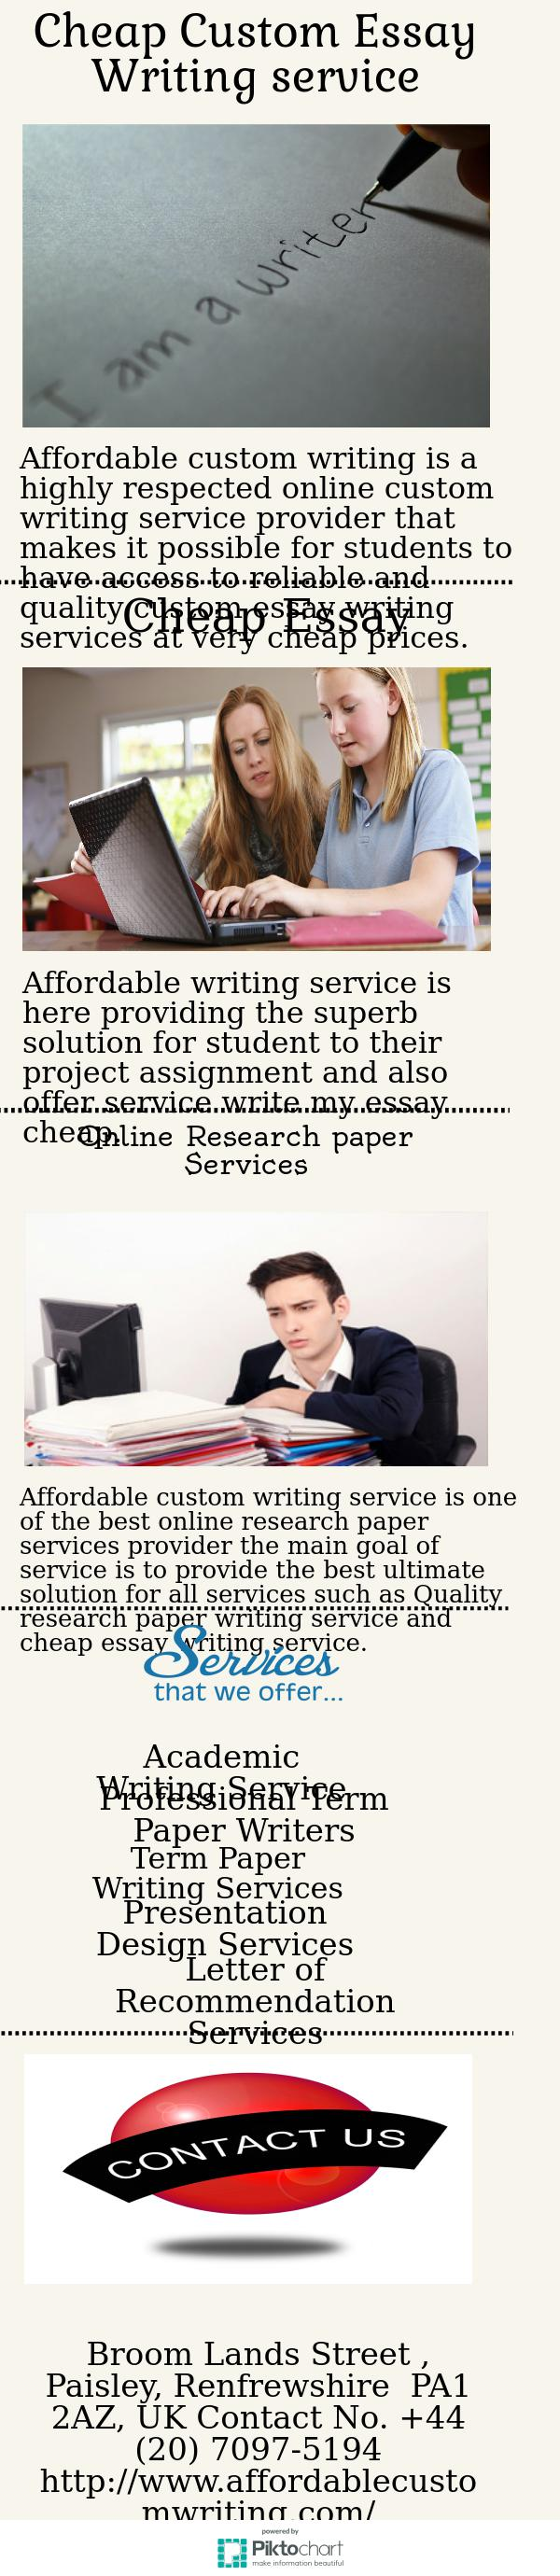 research proposal of air pollution secretary responsibilities best academic custom paper writing service ascend surgical s quality custom paper writing service a one